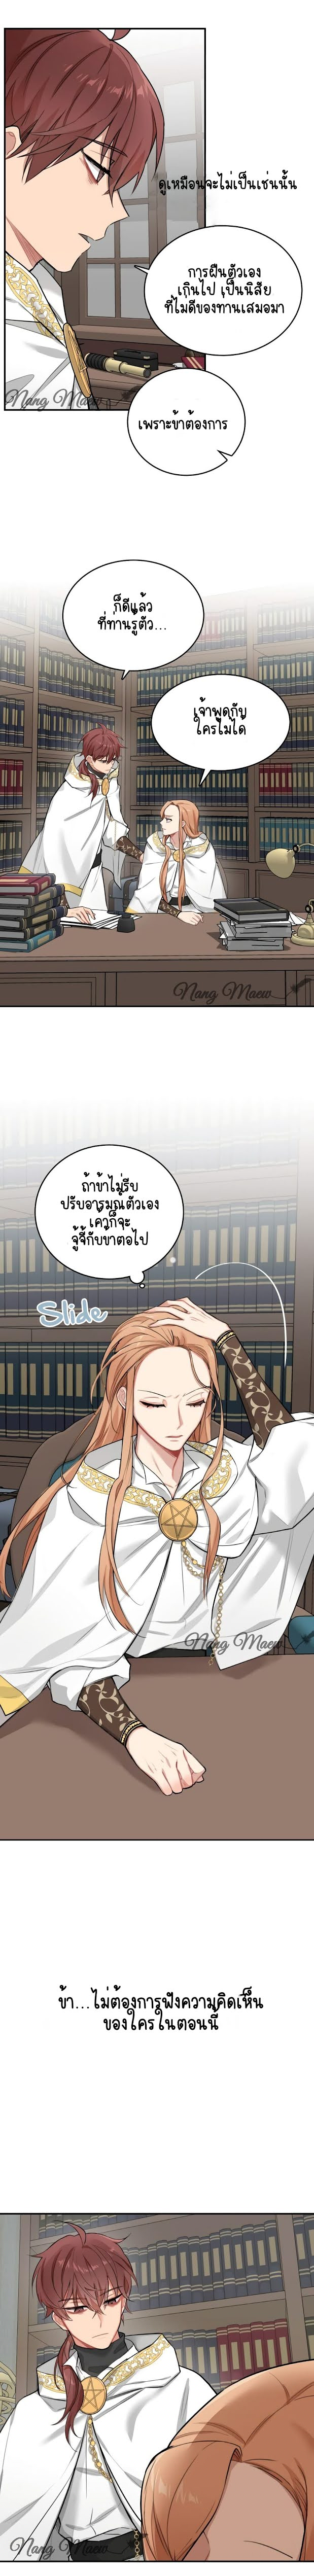 The Newlywed Life of a Witch and a Dragon - หน้า 4